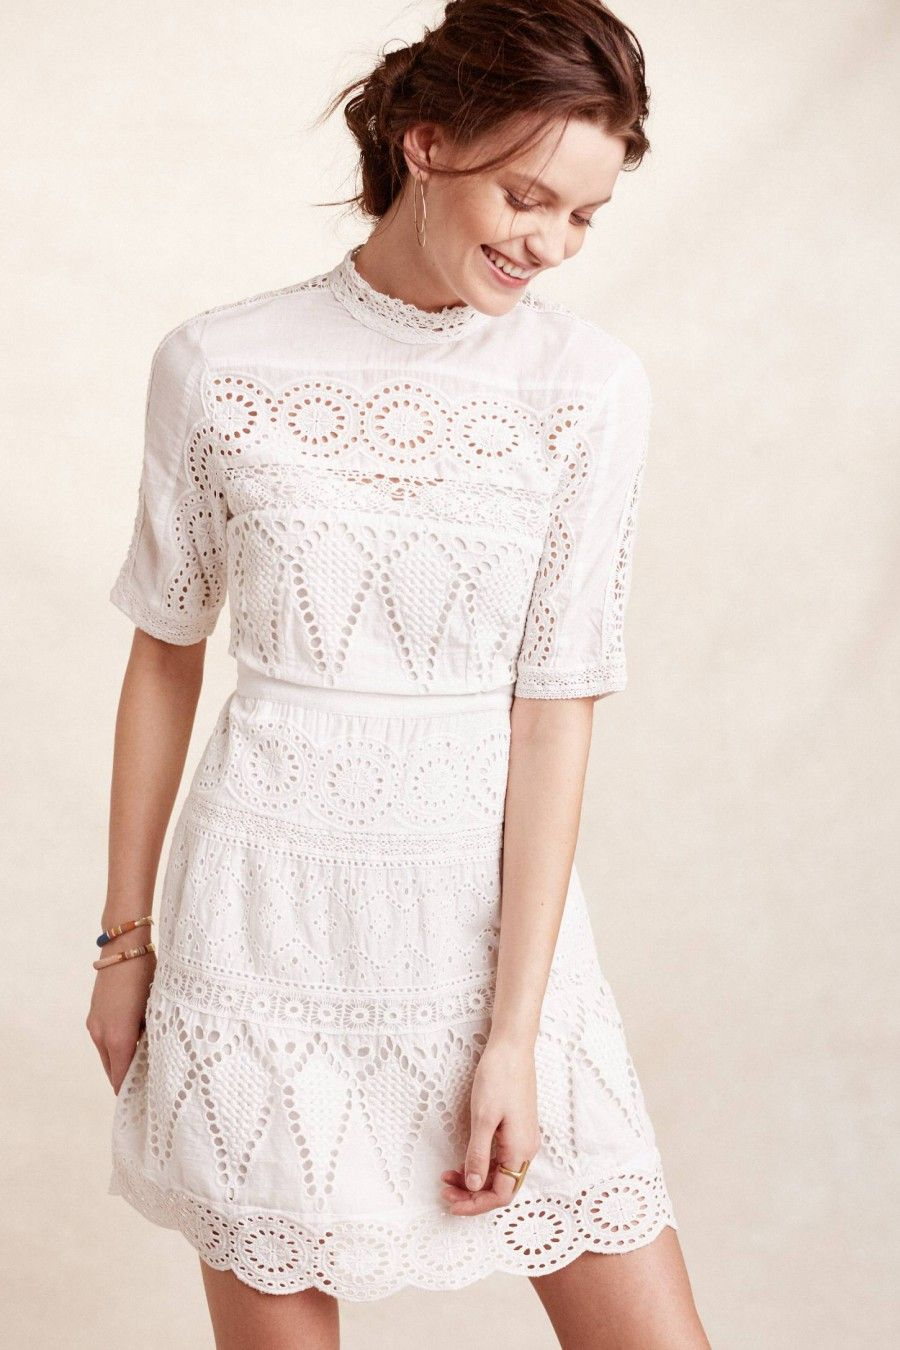 Style Beyond The Aisle What To Wear To All Your Wedding Events Stillwhite Blog Eyelet Dress Dresses Fashion [ 1350 x 900 Pixel ]